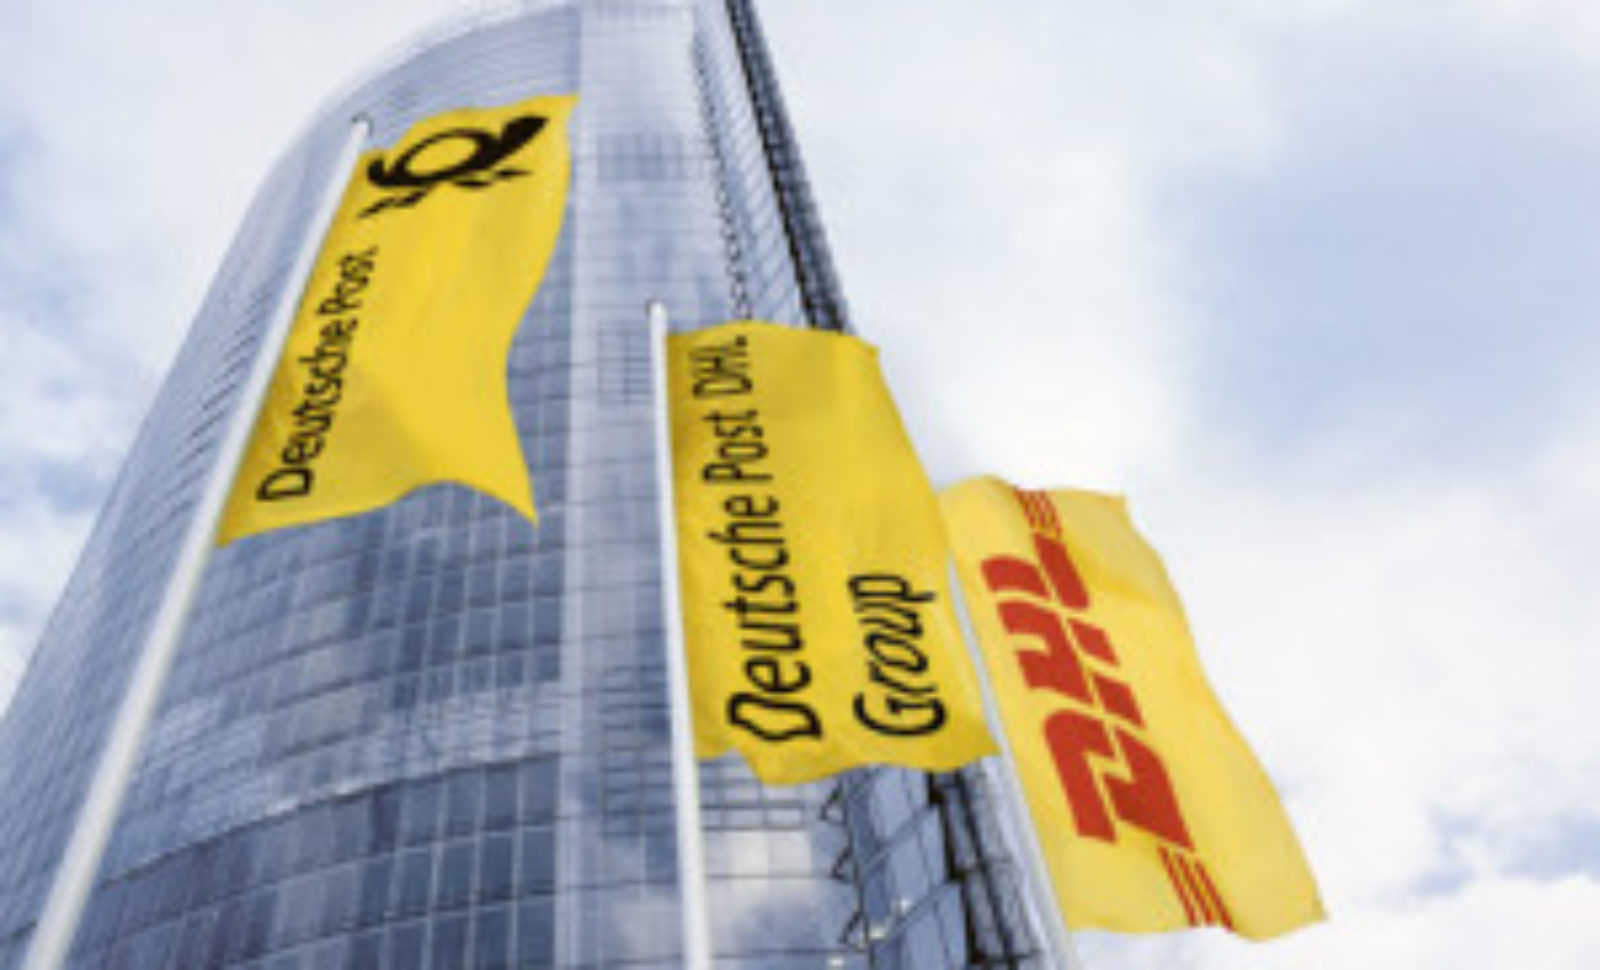 Profits and margin rise at Deutsche Post DHL